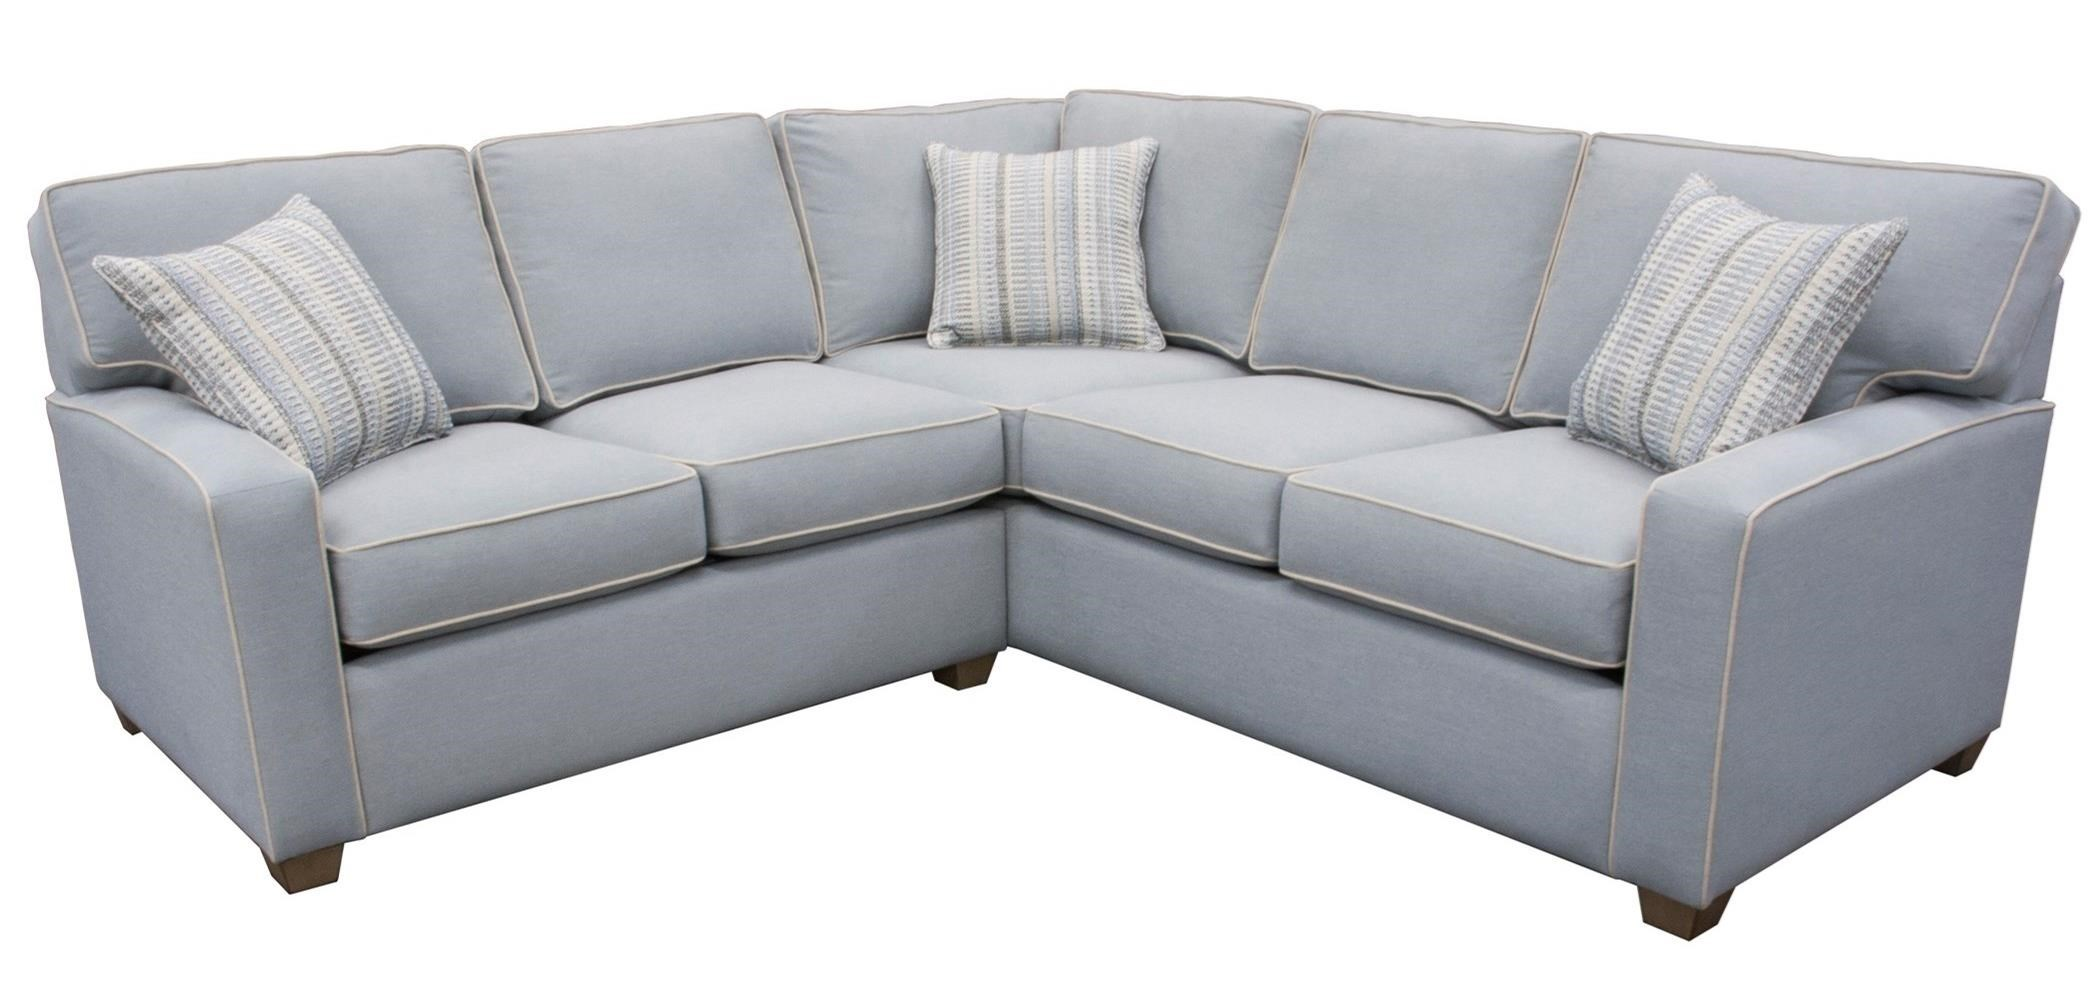 145 2 Pc Corner Sectional Sofa by Capris Furniture at Esprit Decor Home Furnishings